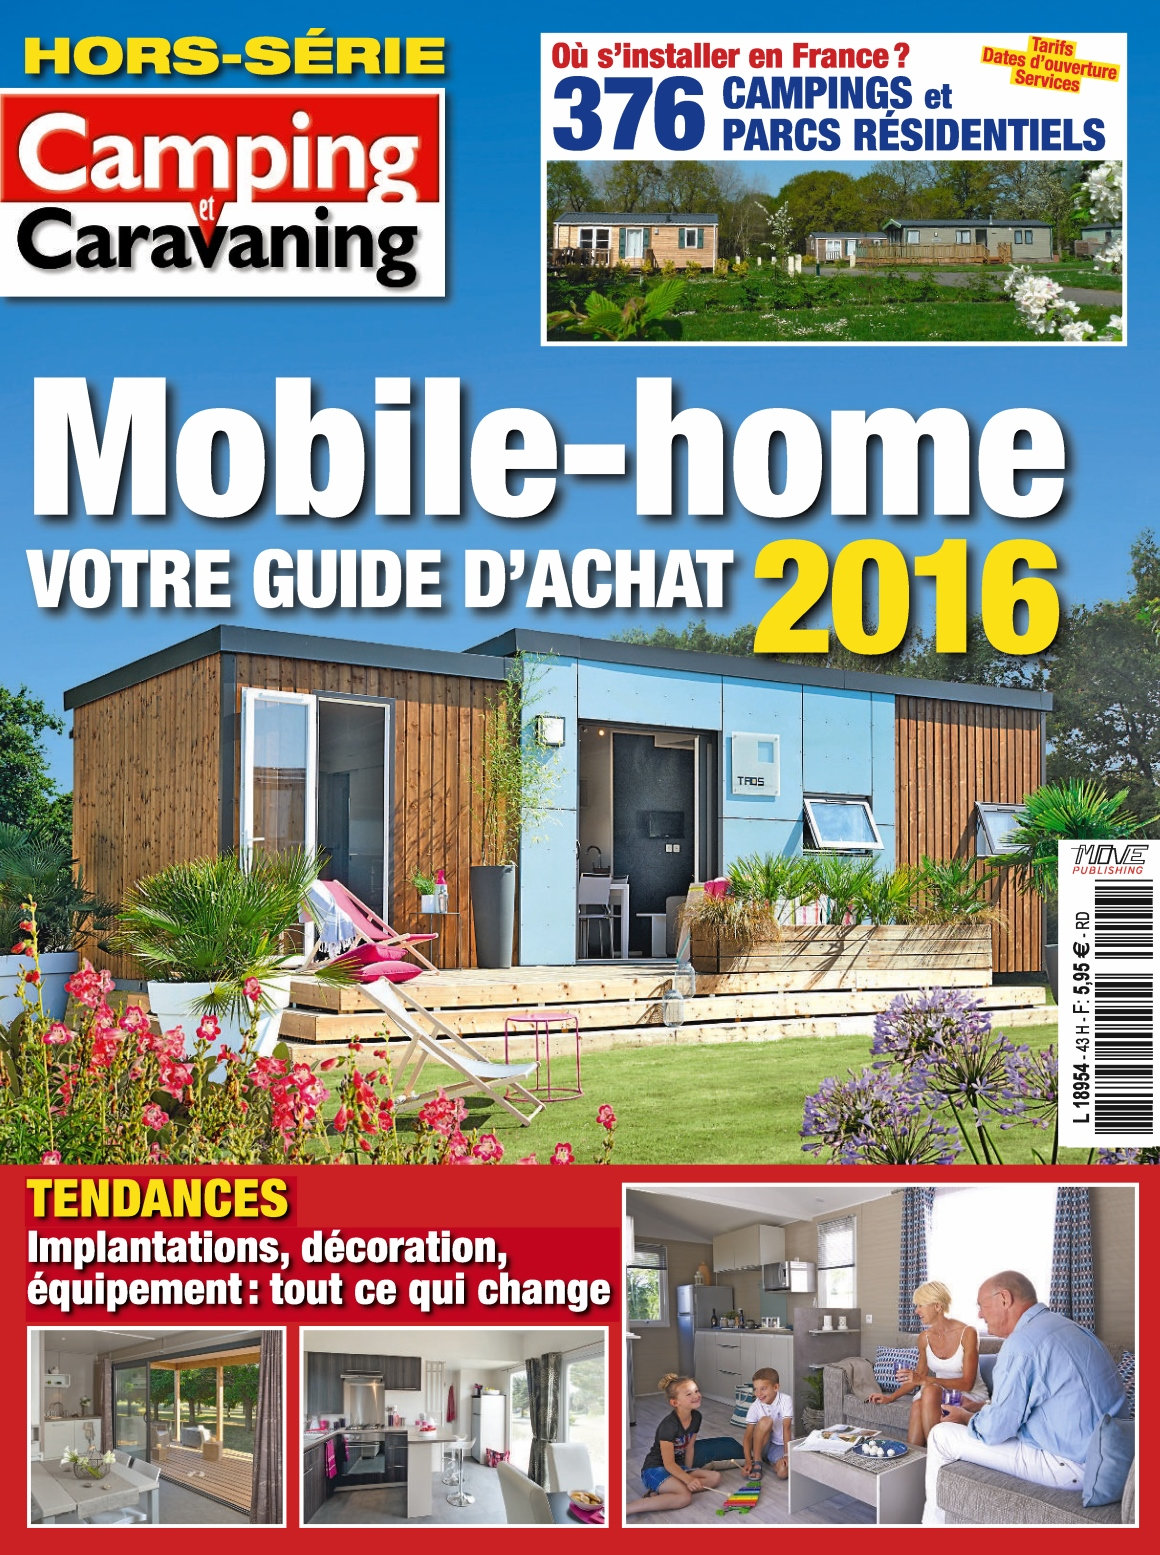 Camping et Caravaning Hors-Série N°43 - Guide D'achat 2016